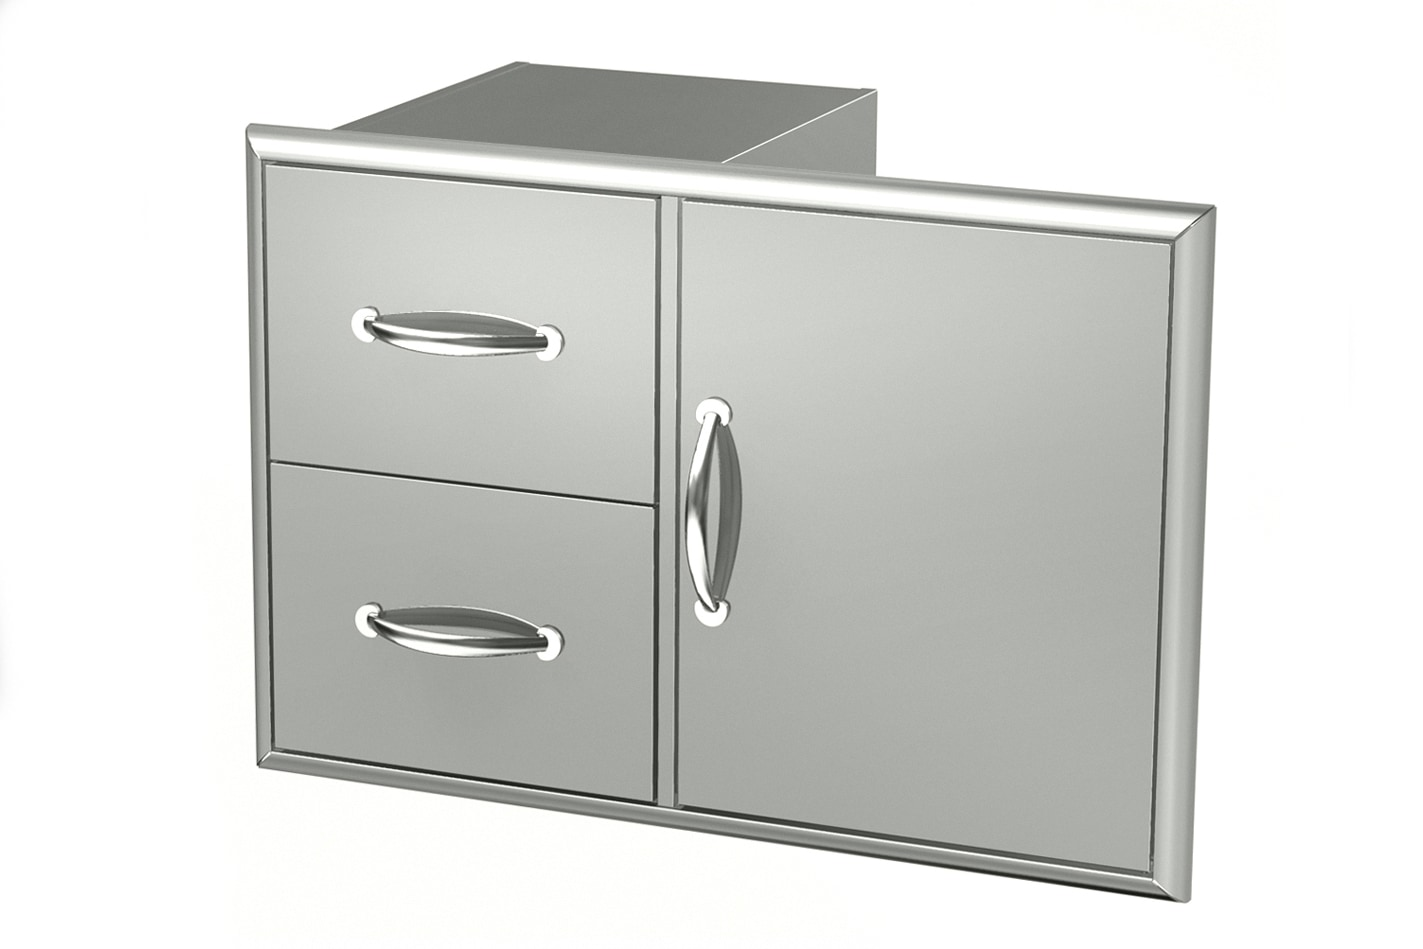 stainless steel kitchen cart with drawers exhaust hood broilchef double